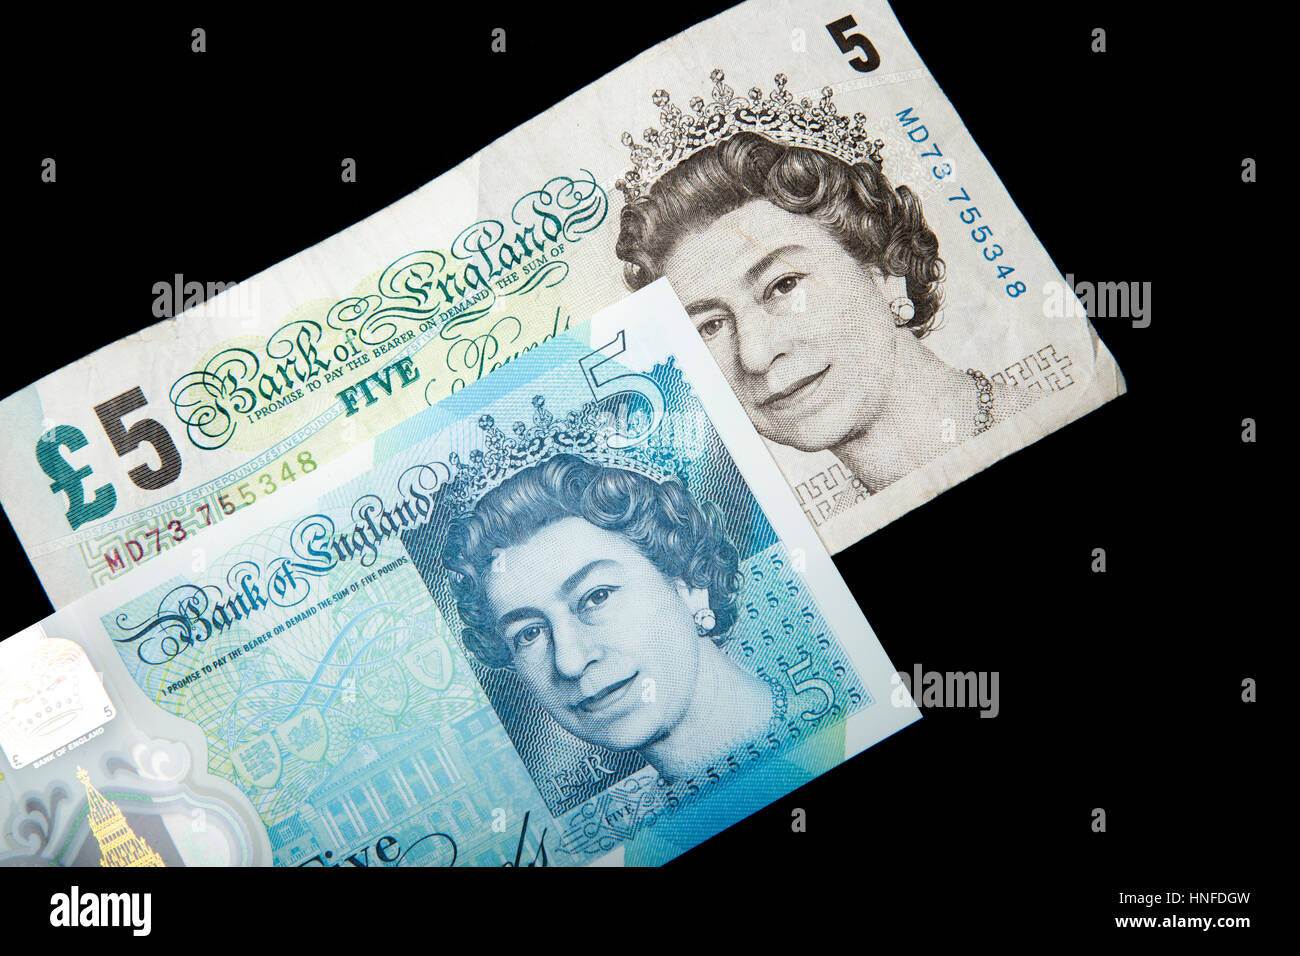 New polymer 5 pound note next to the old paper note - Stock Image